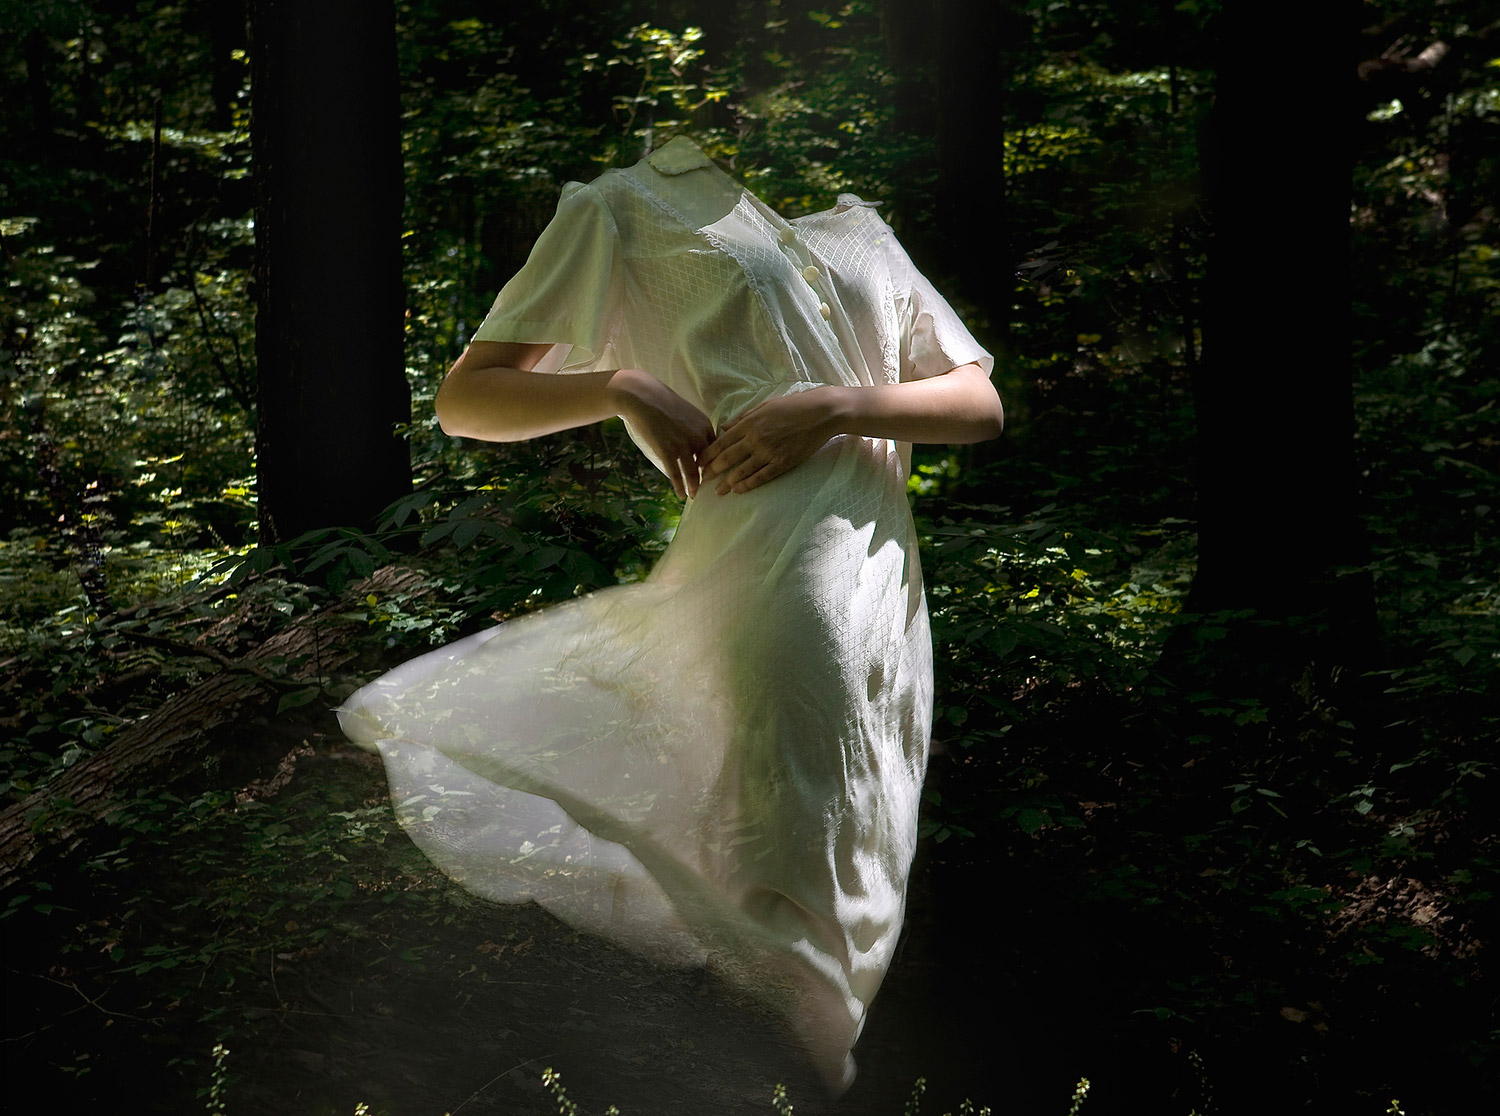 Alice Zilberberg, Forests of Gaia - ghostly dress dancing in forest